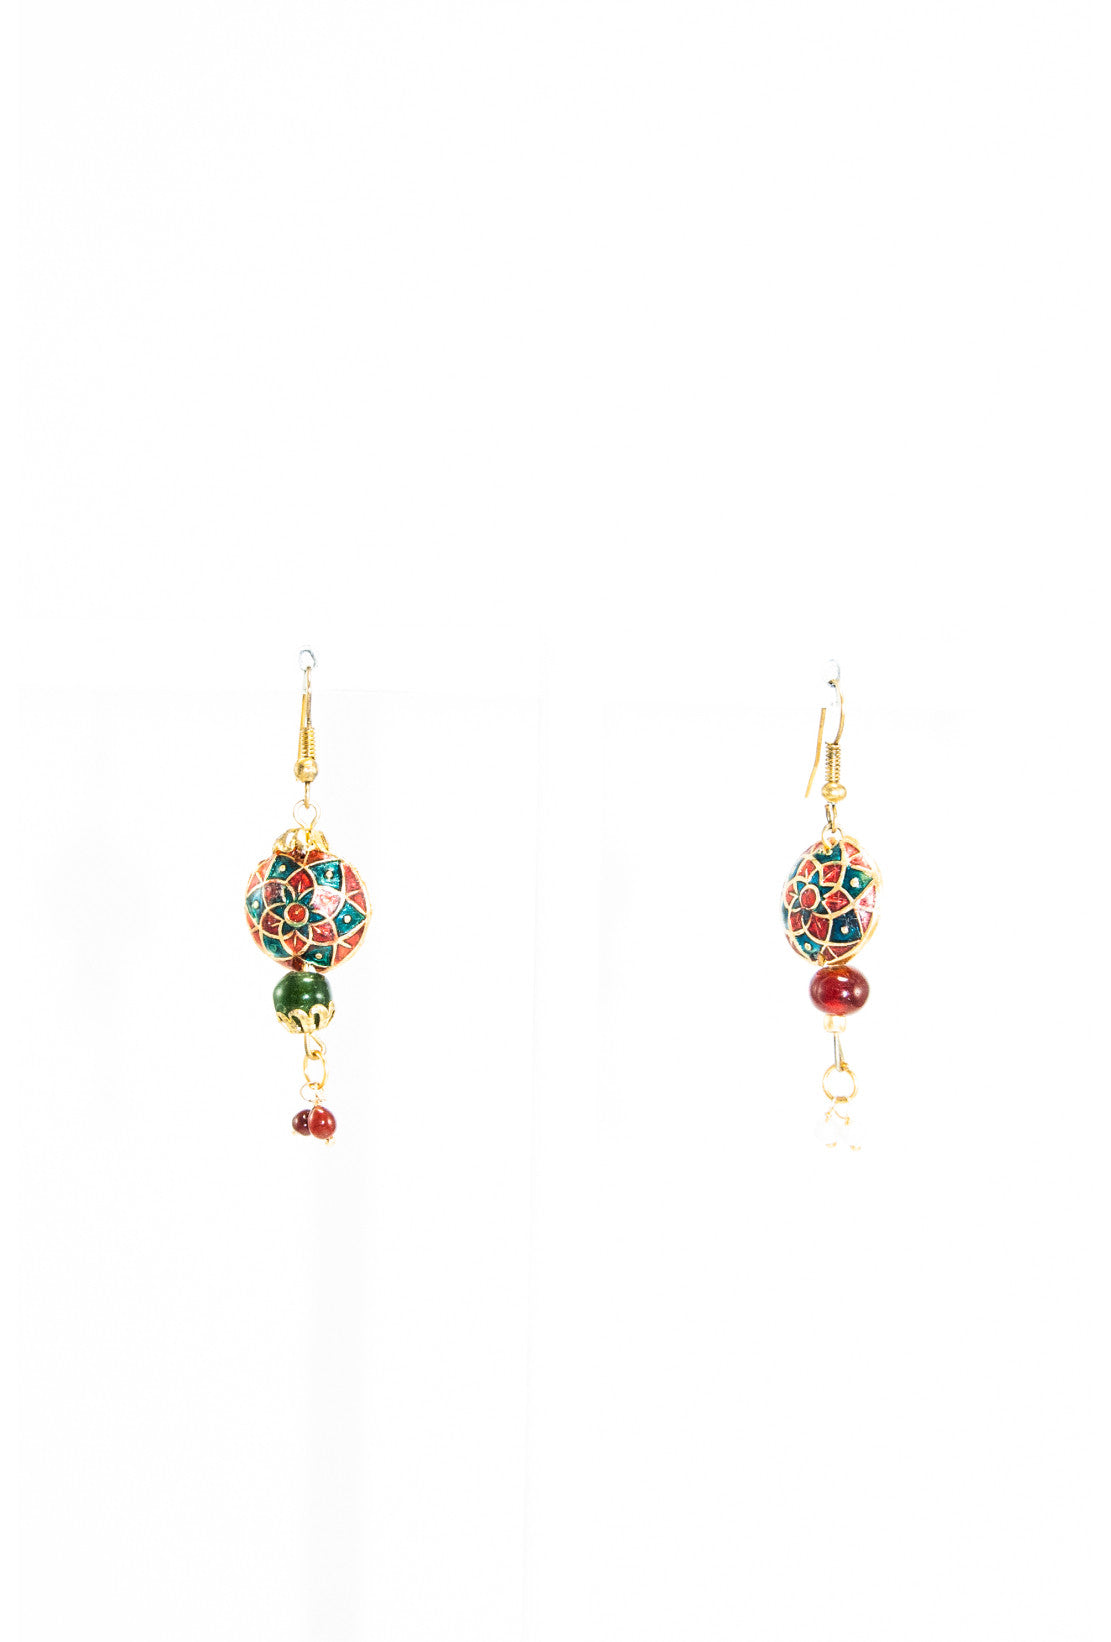 earrings by simply fourseven work online buy it smokey india in quartz